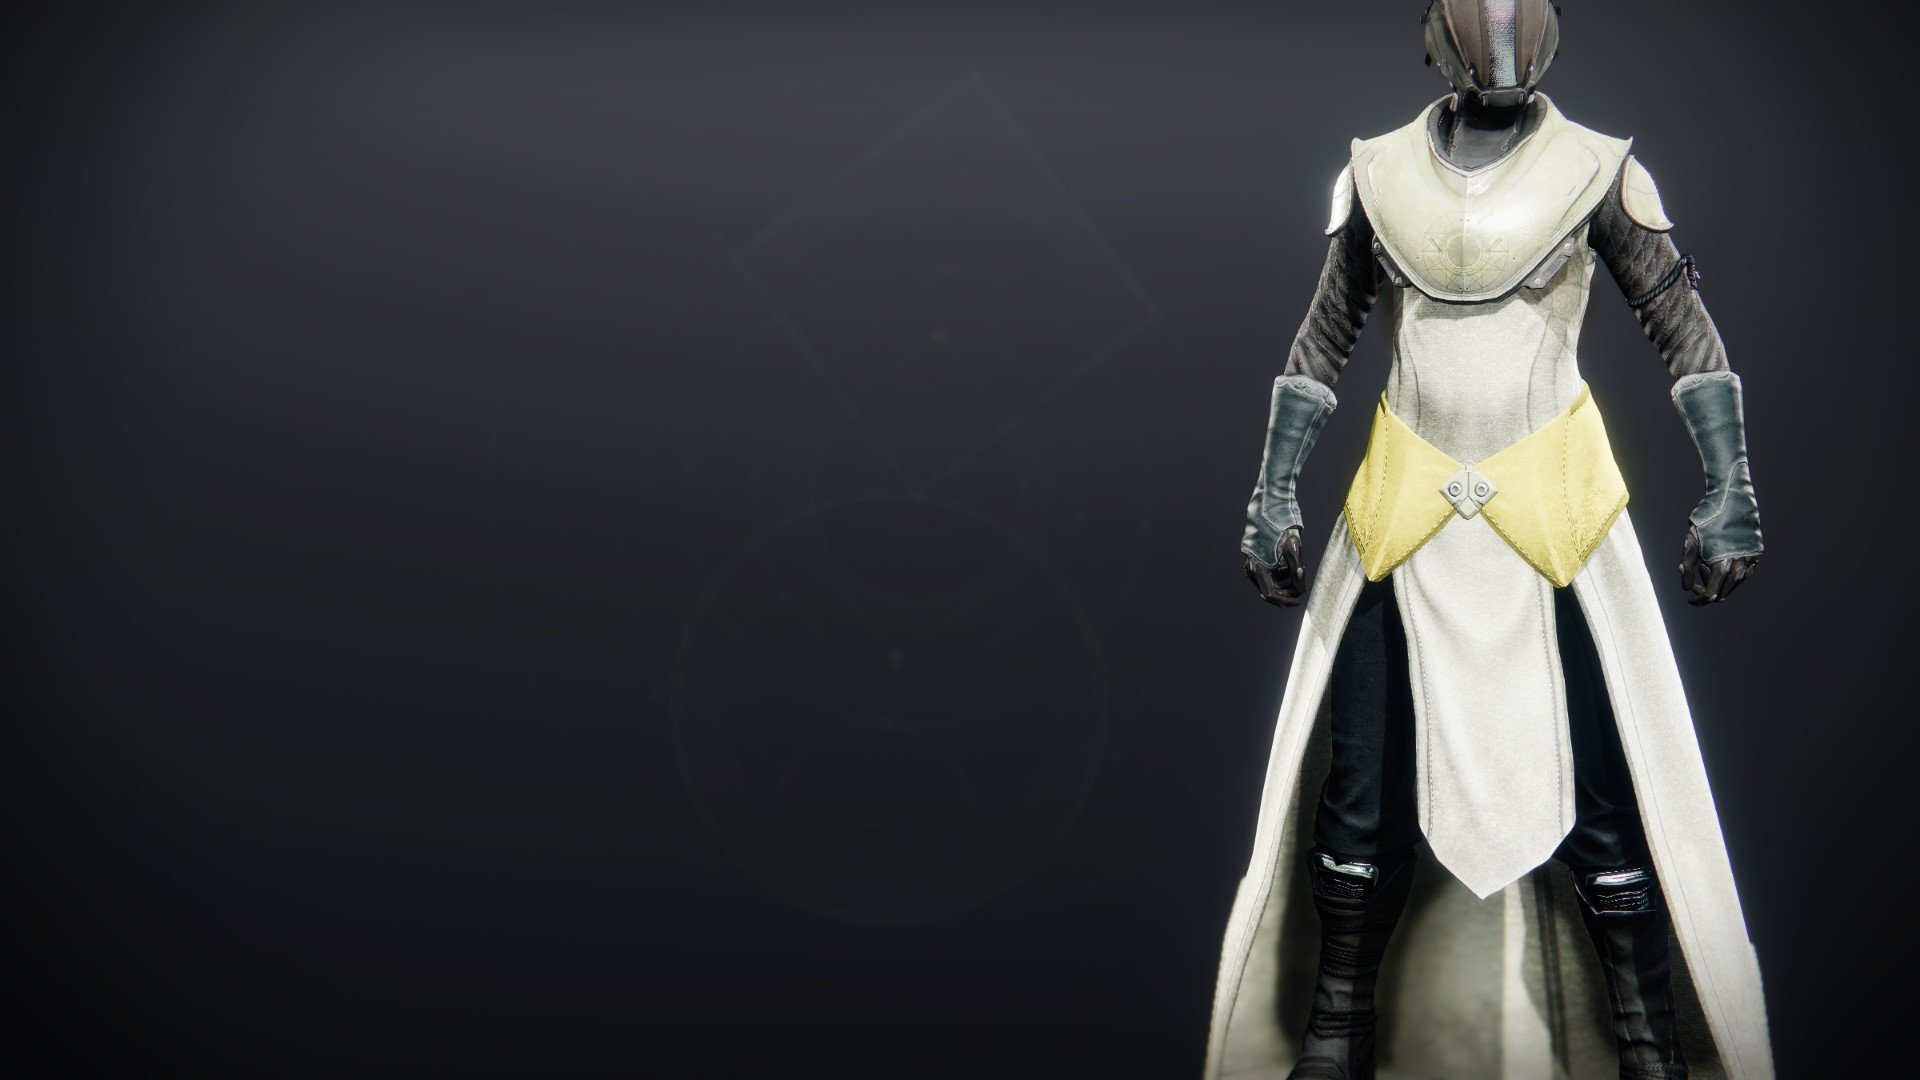 An in-game render of the Gensym Knight Robes.